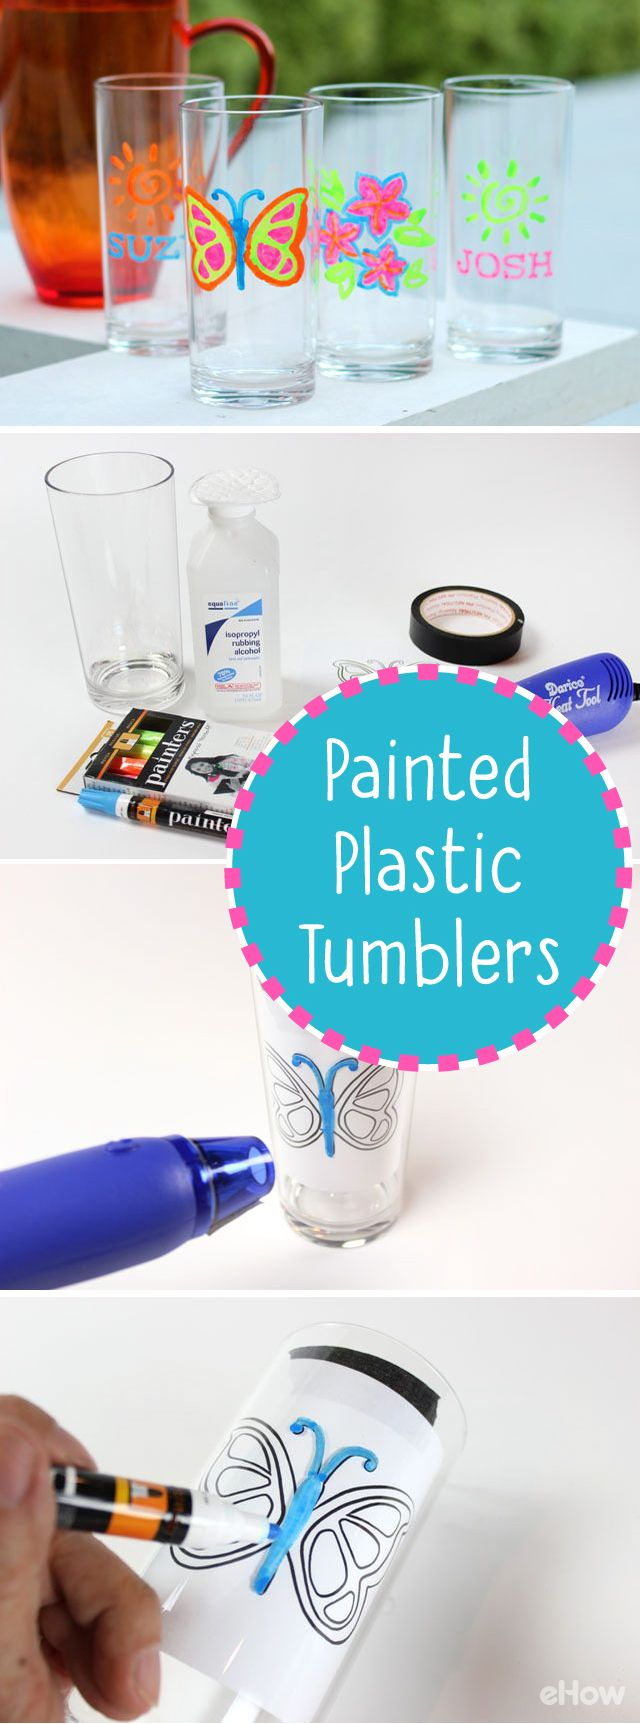 Decorating Plastic Tumblers 17 Best Ideas About Plastic Tumblers On Pinterest Plastic Cup